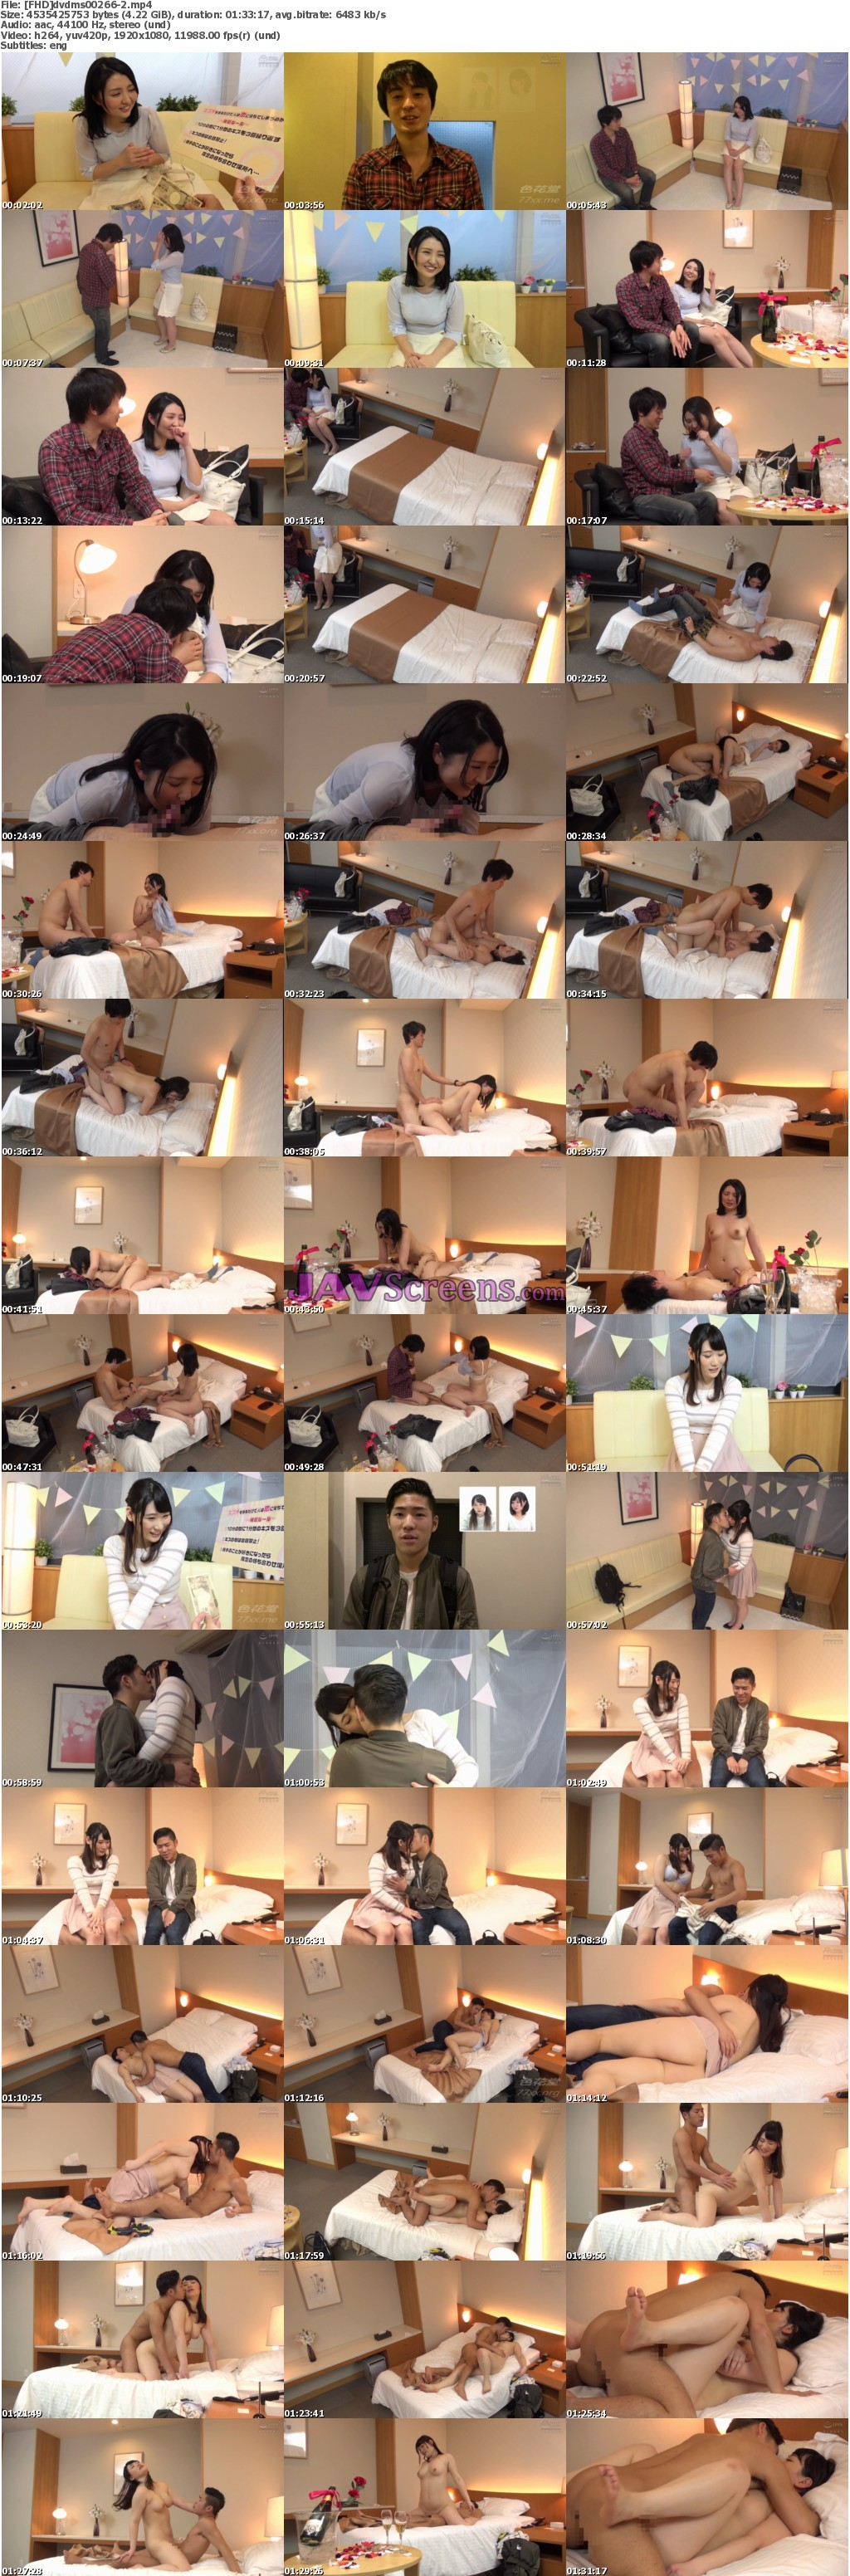 DVDMS-266B.jpg - JAV Screenshot